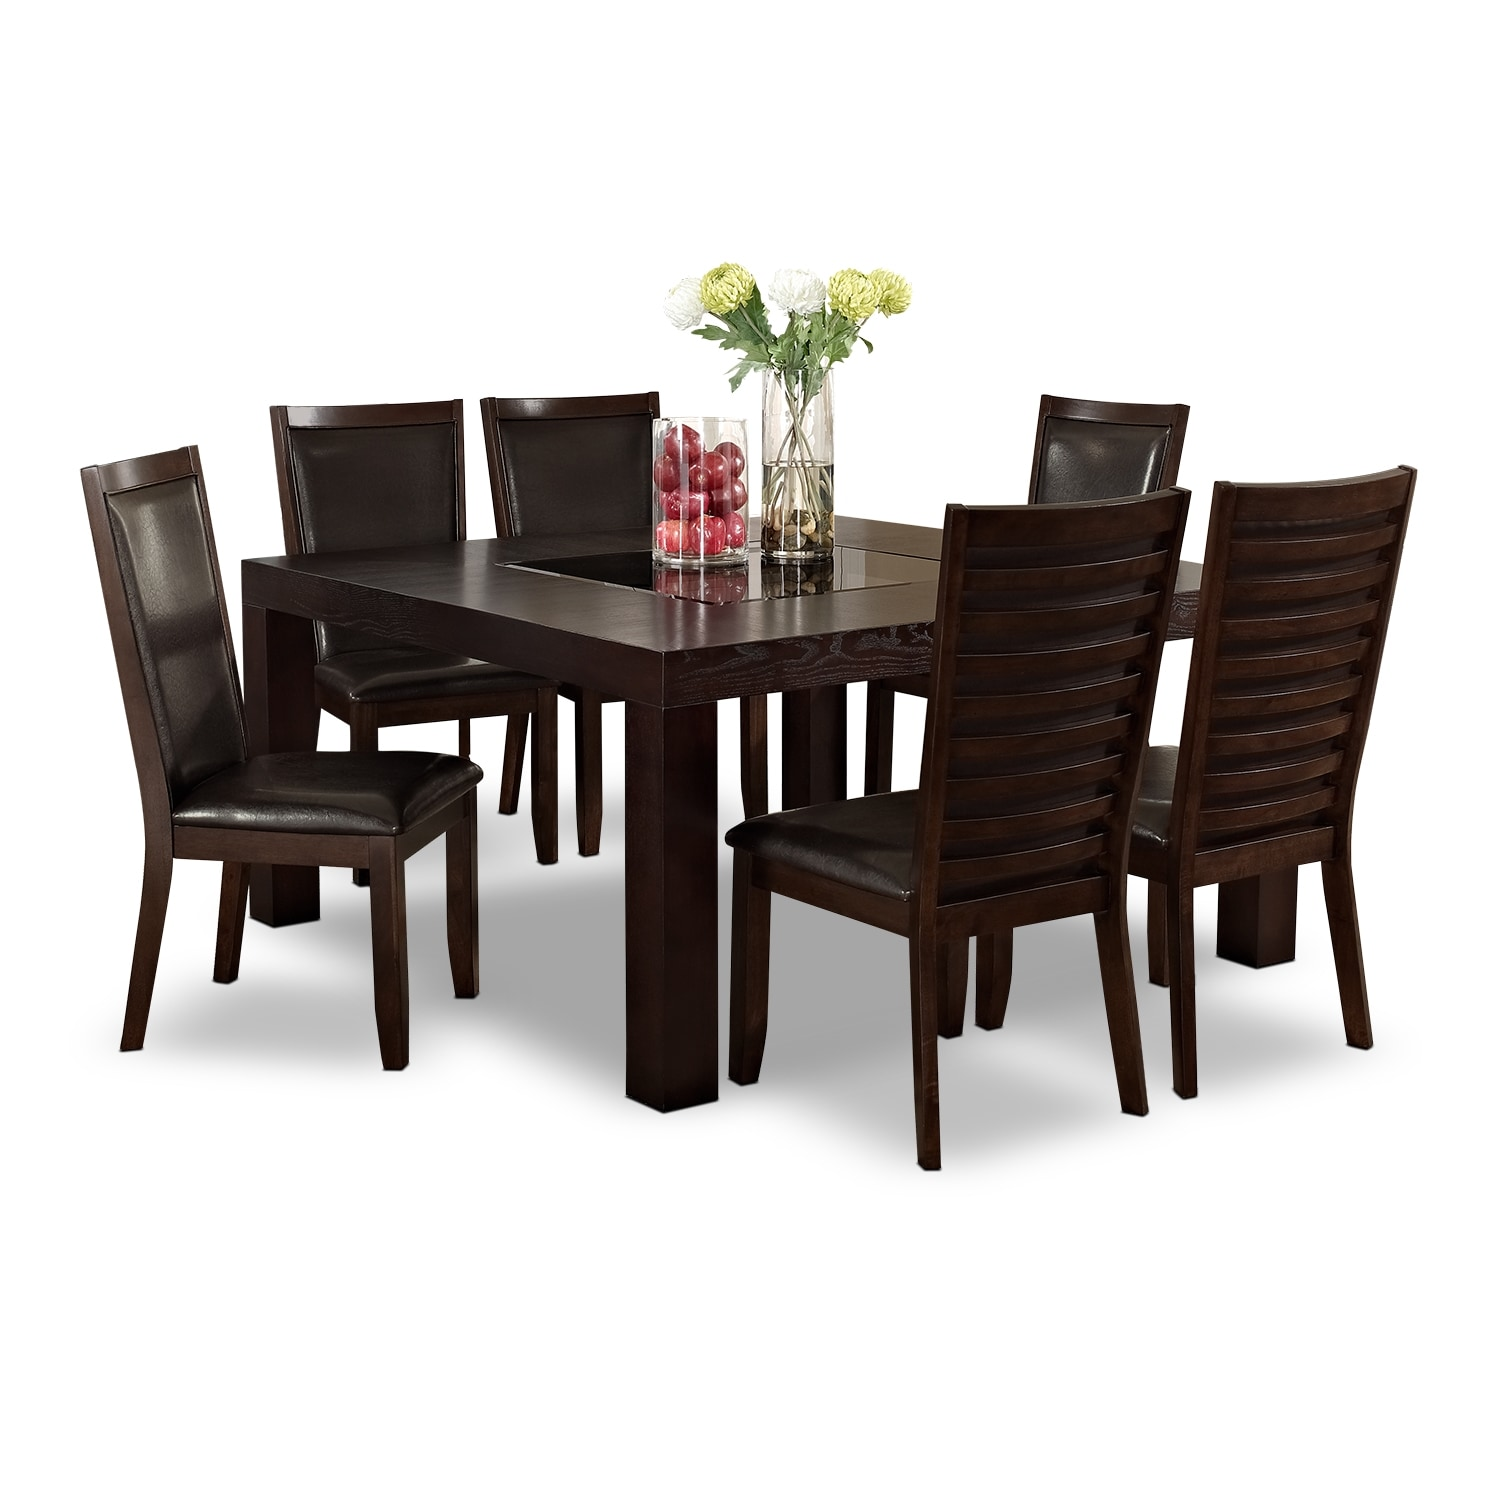 """[Tango Paragon II 7 Pc. Dinette with 60x60"""" Table - Merlot and Brown]"""